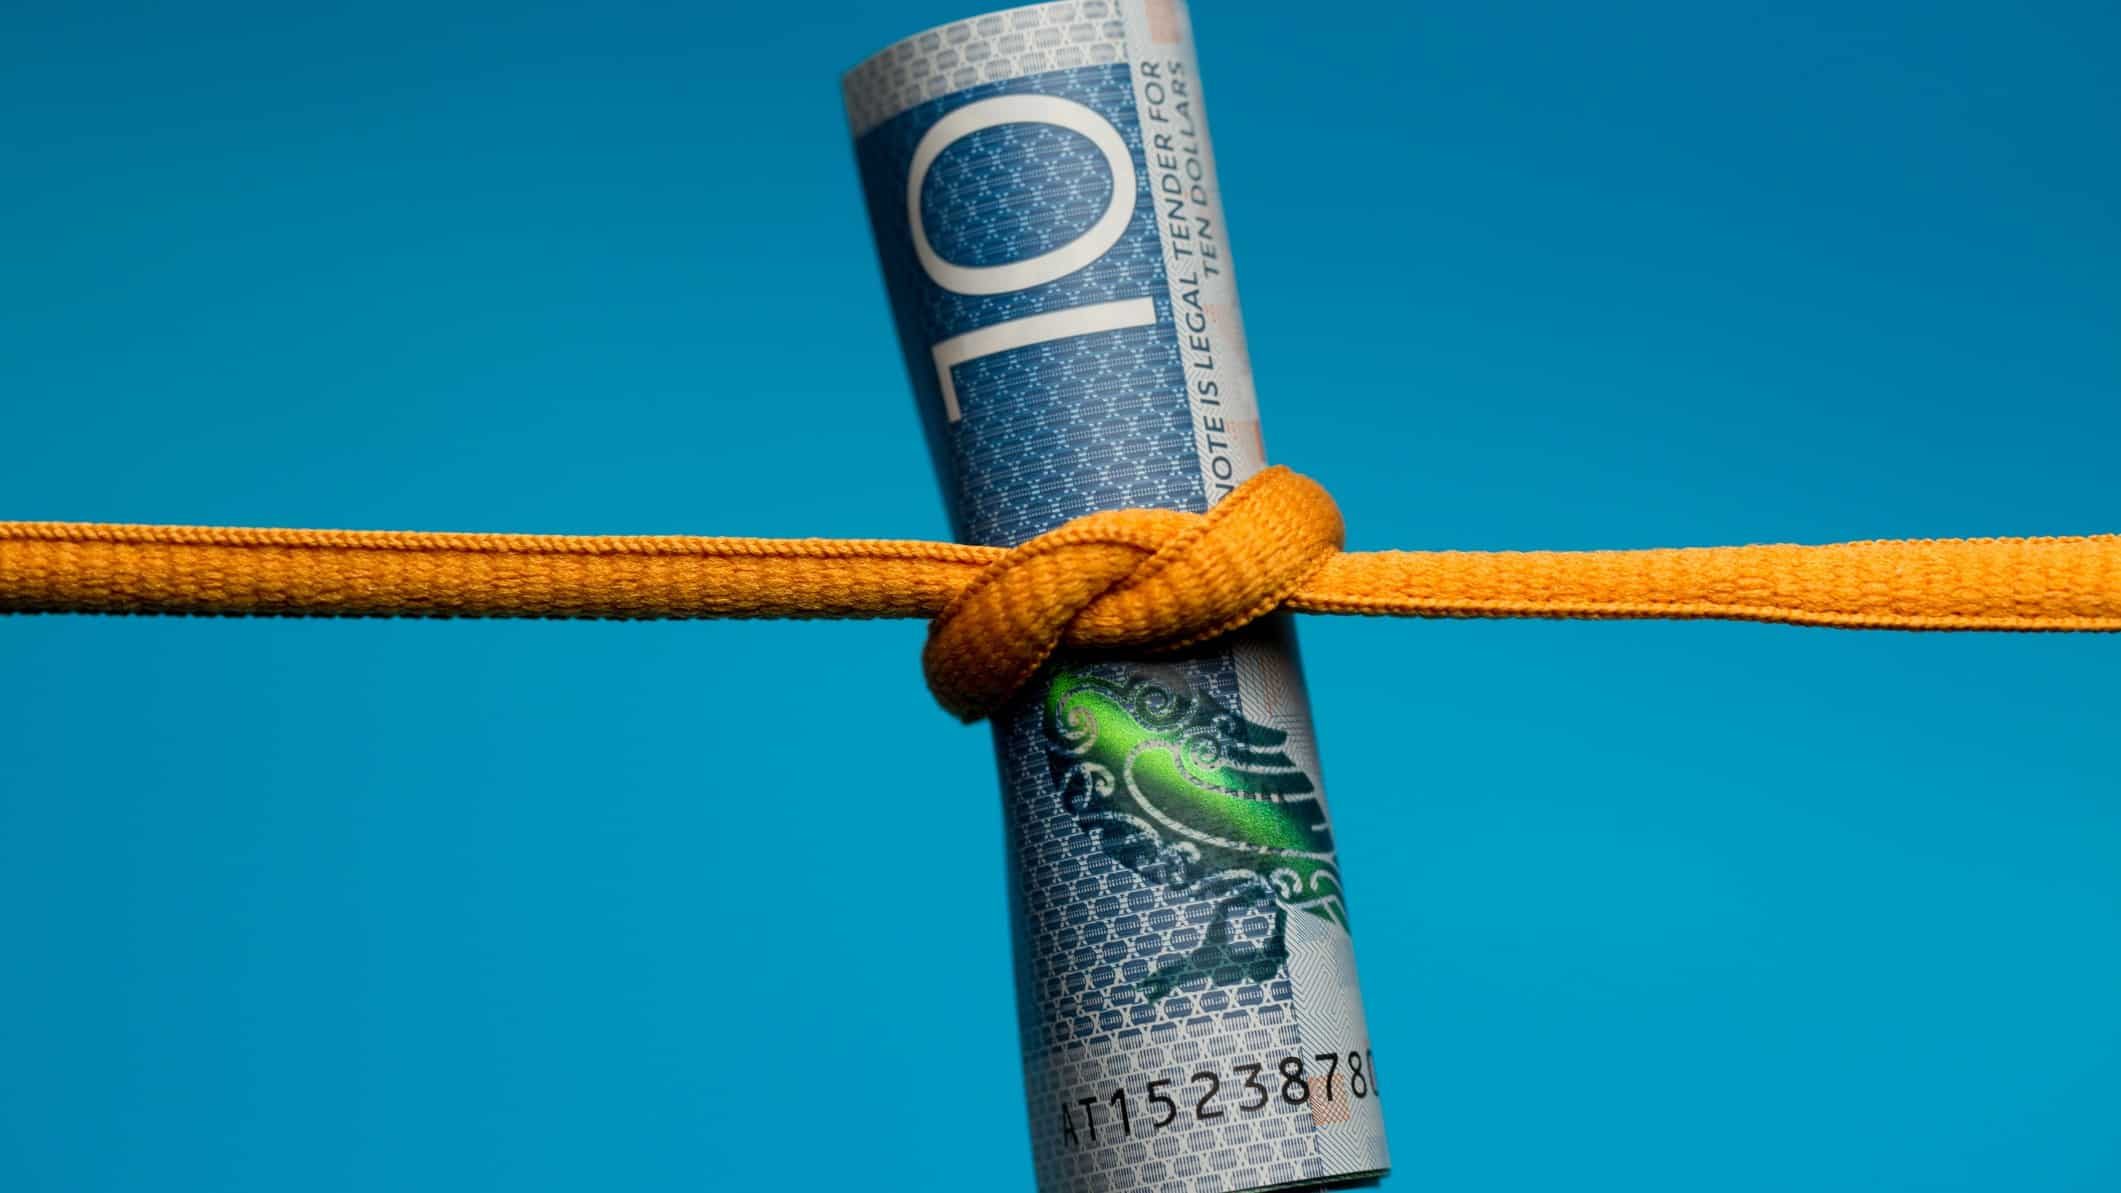 New Zealand $10 note being squeezed by an orange string to show recession